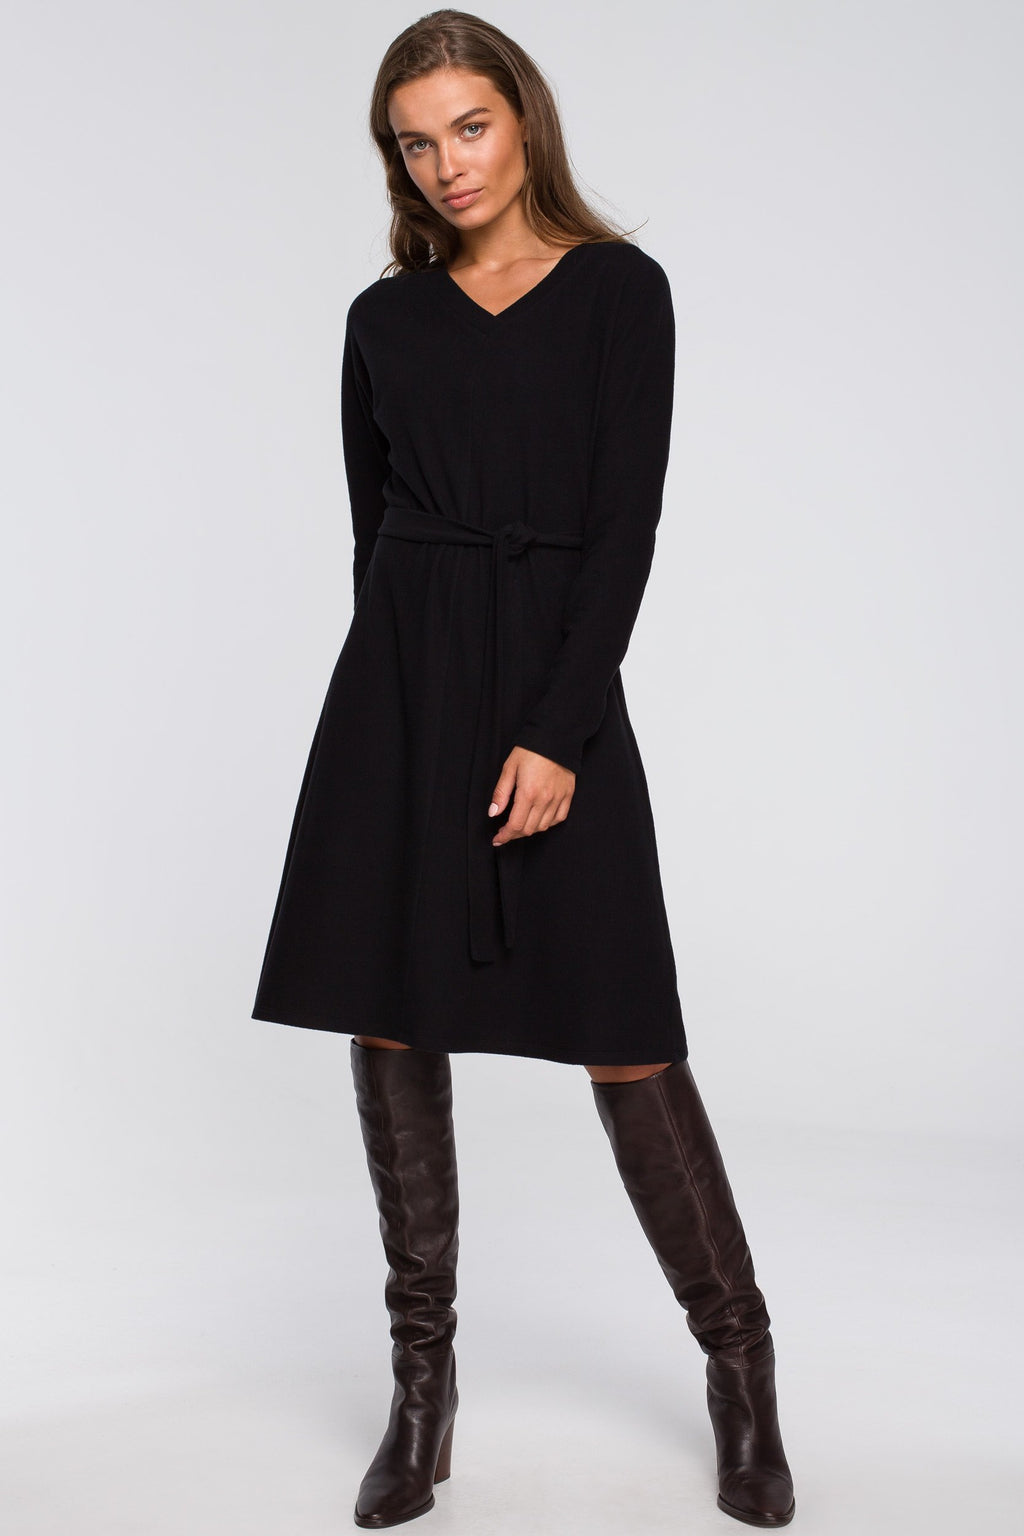 Black A Line Viscose Dress With A Belt - So Chic Boutique